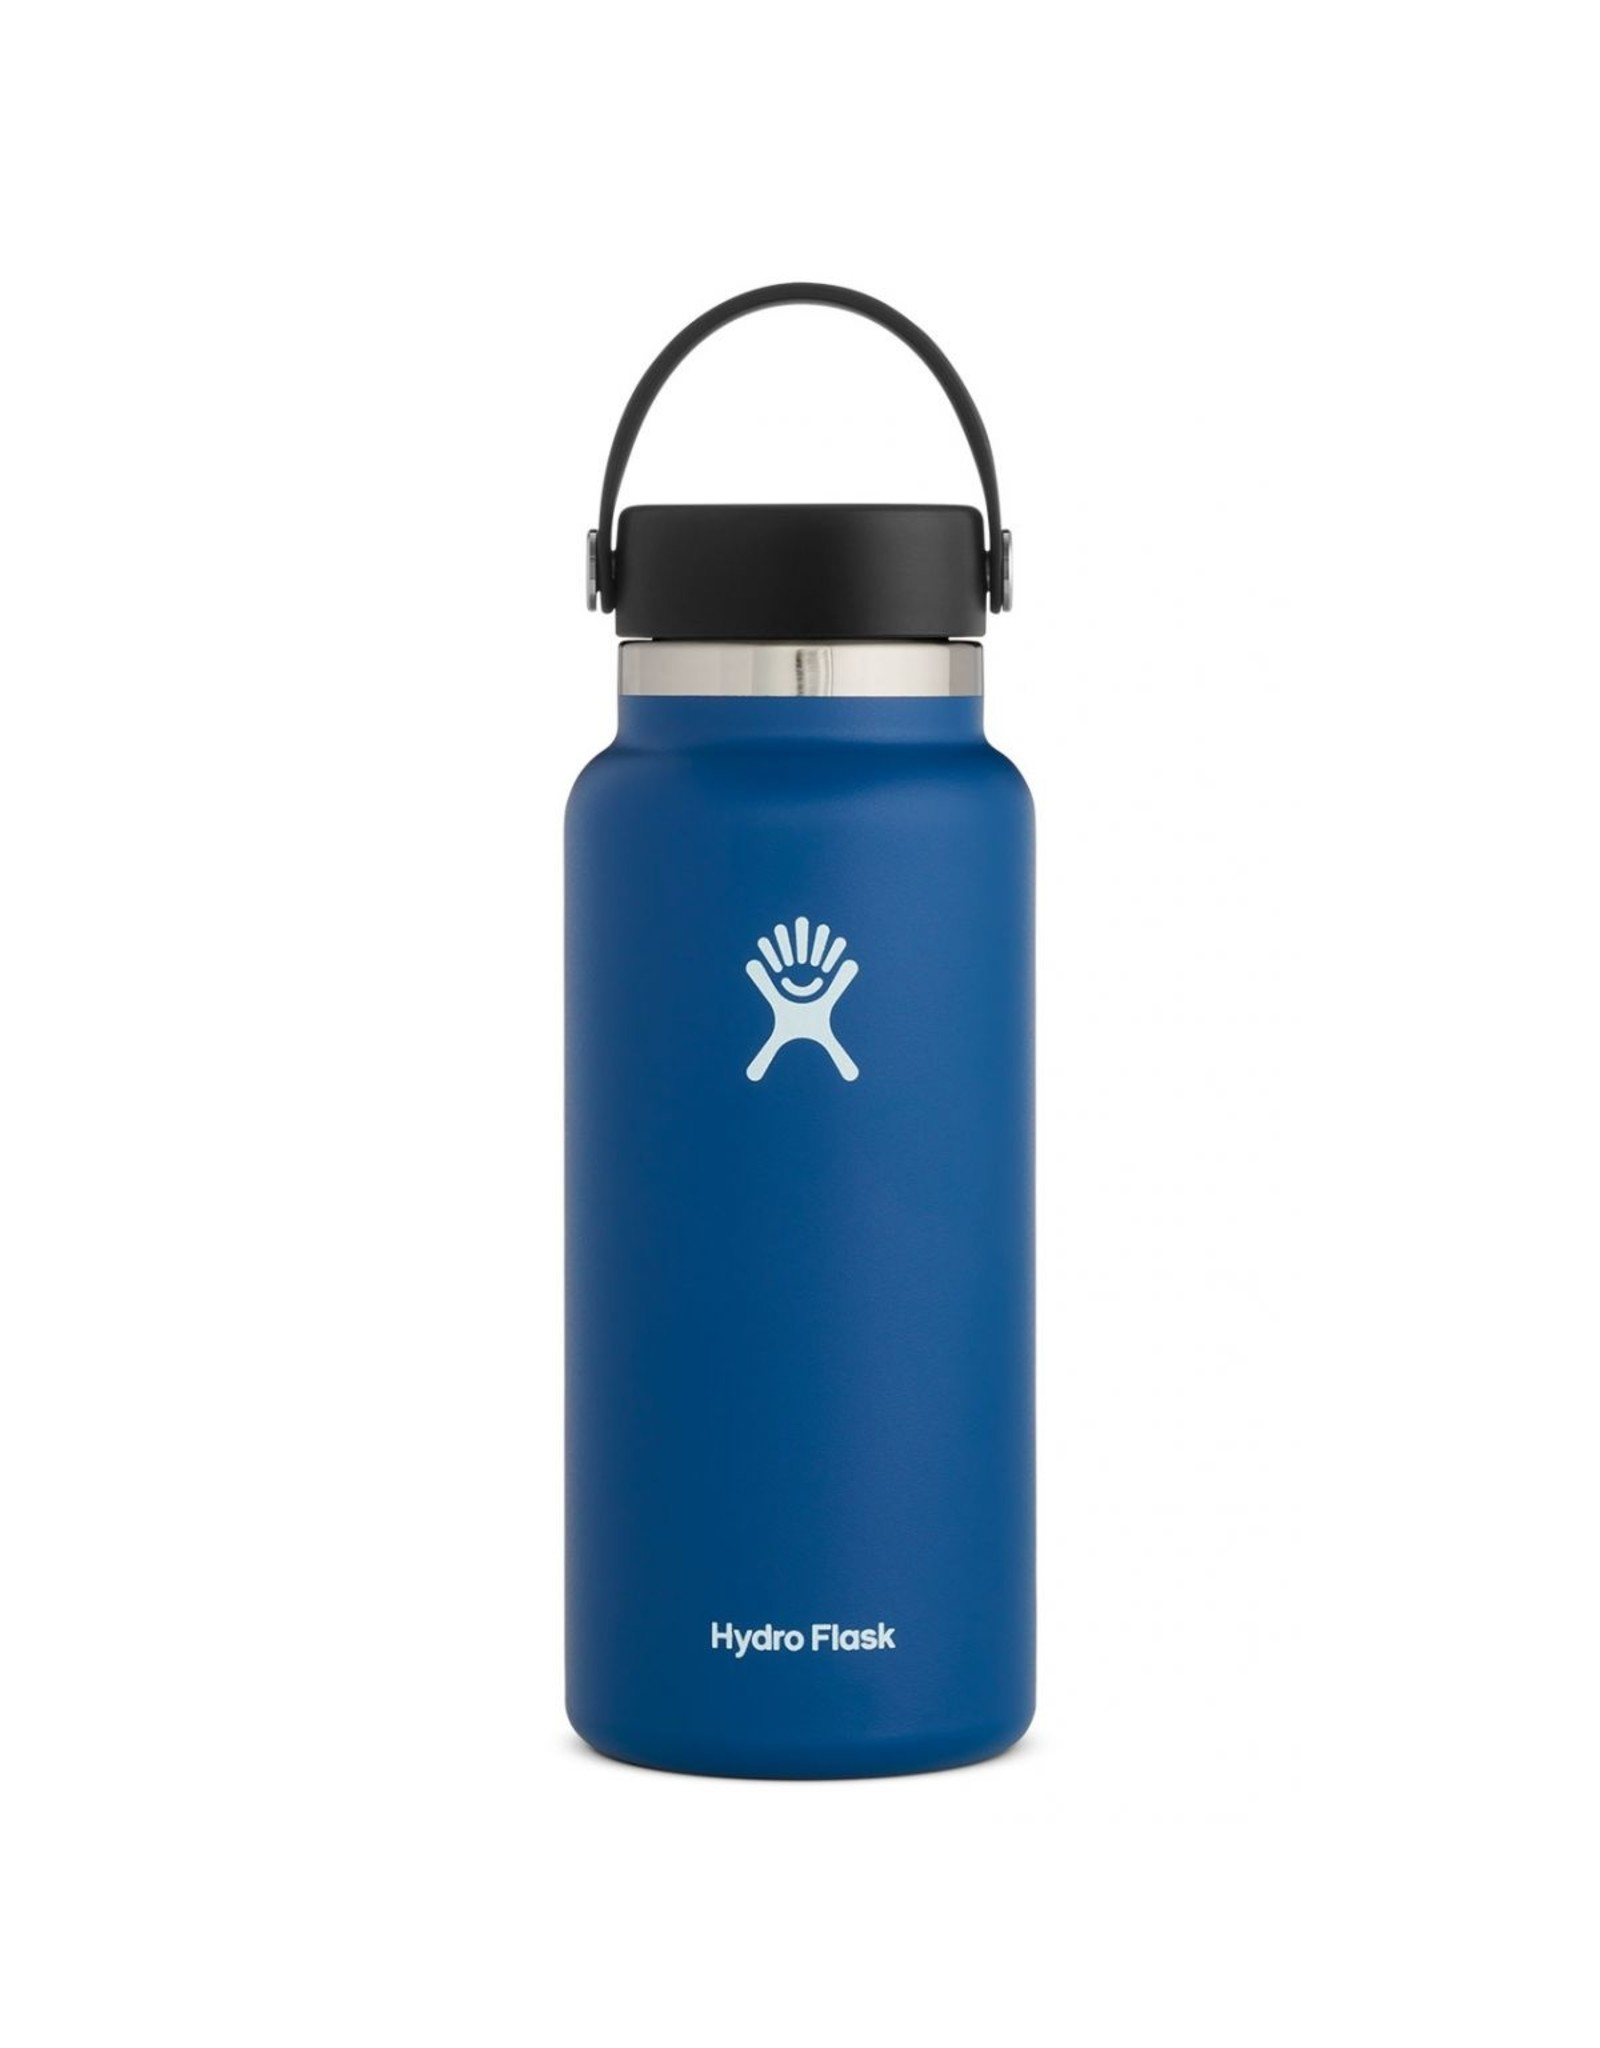 HYDRO FLASK HYDRO FLASK 32OZ WIDE MOUTH-COBALT